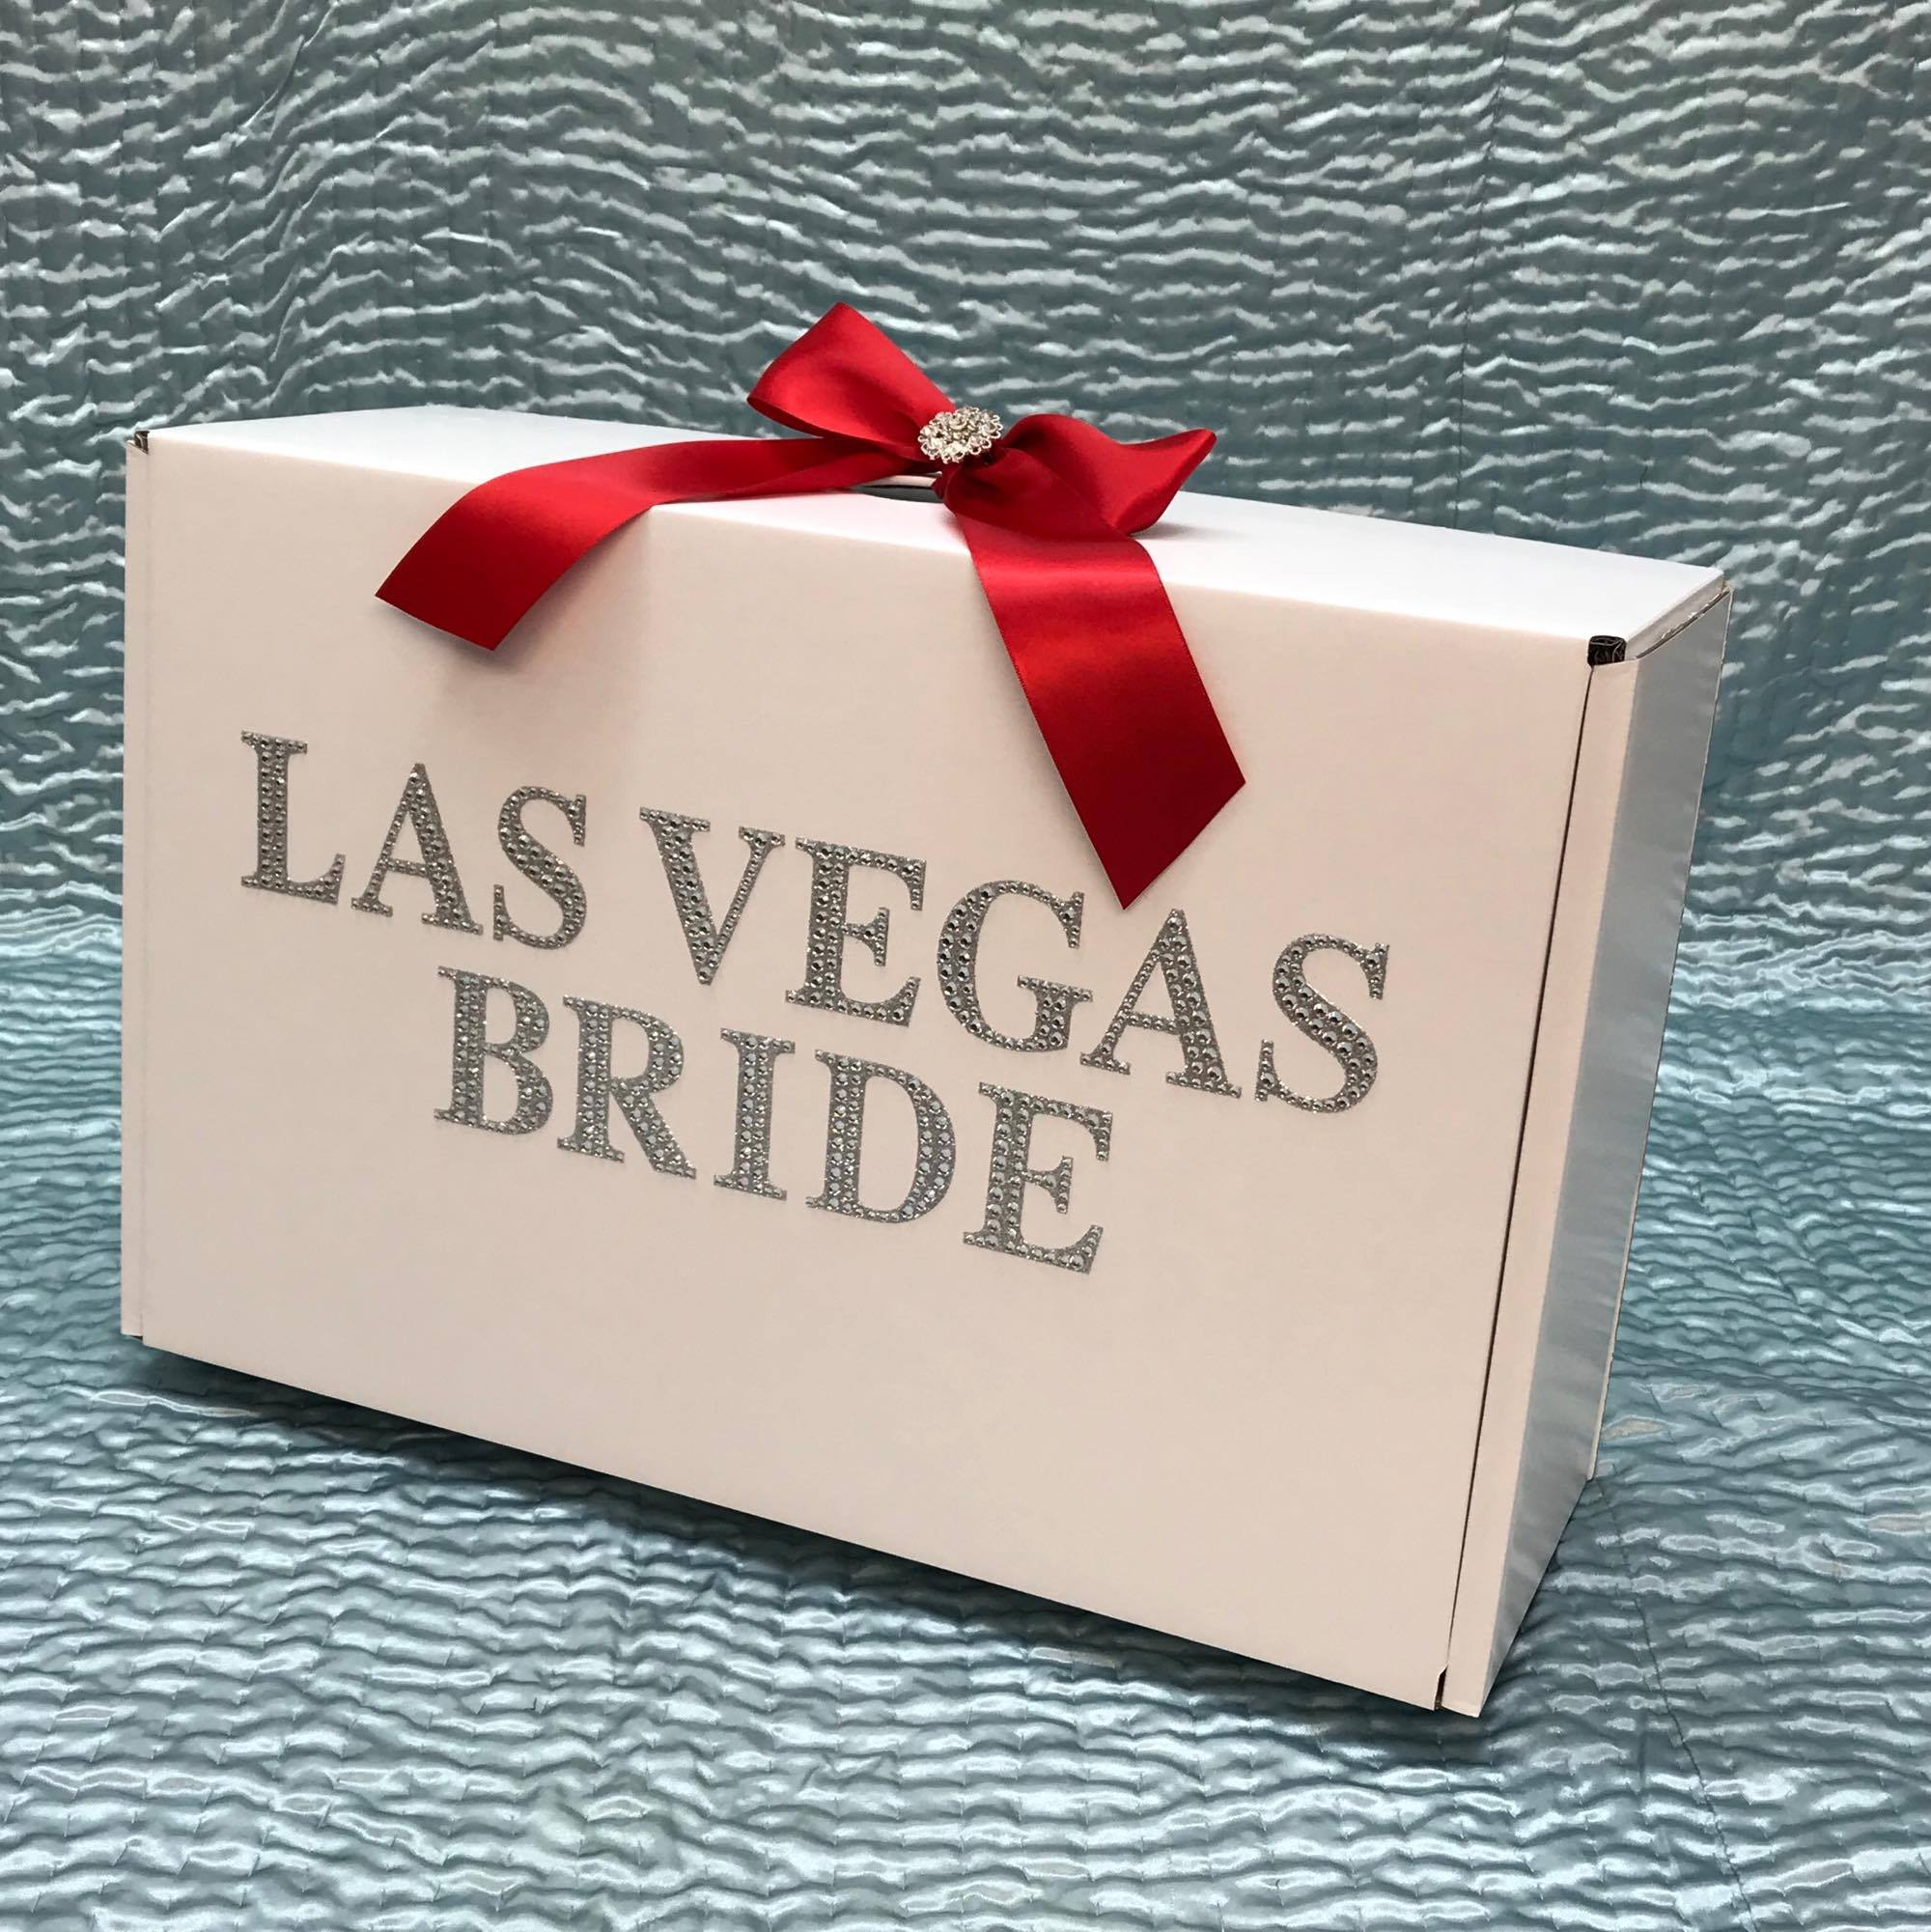 Diamante Las Vegas Bride